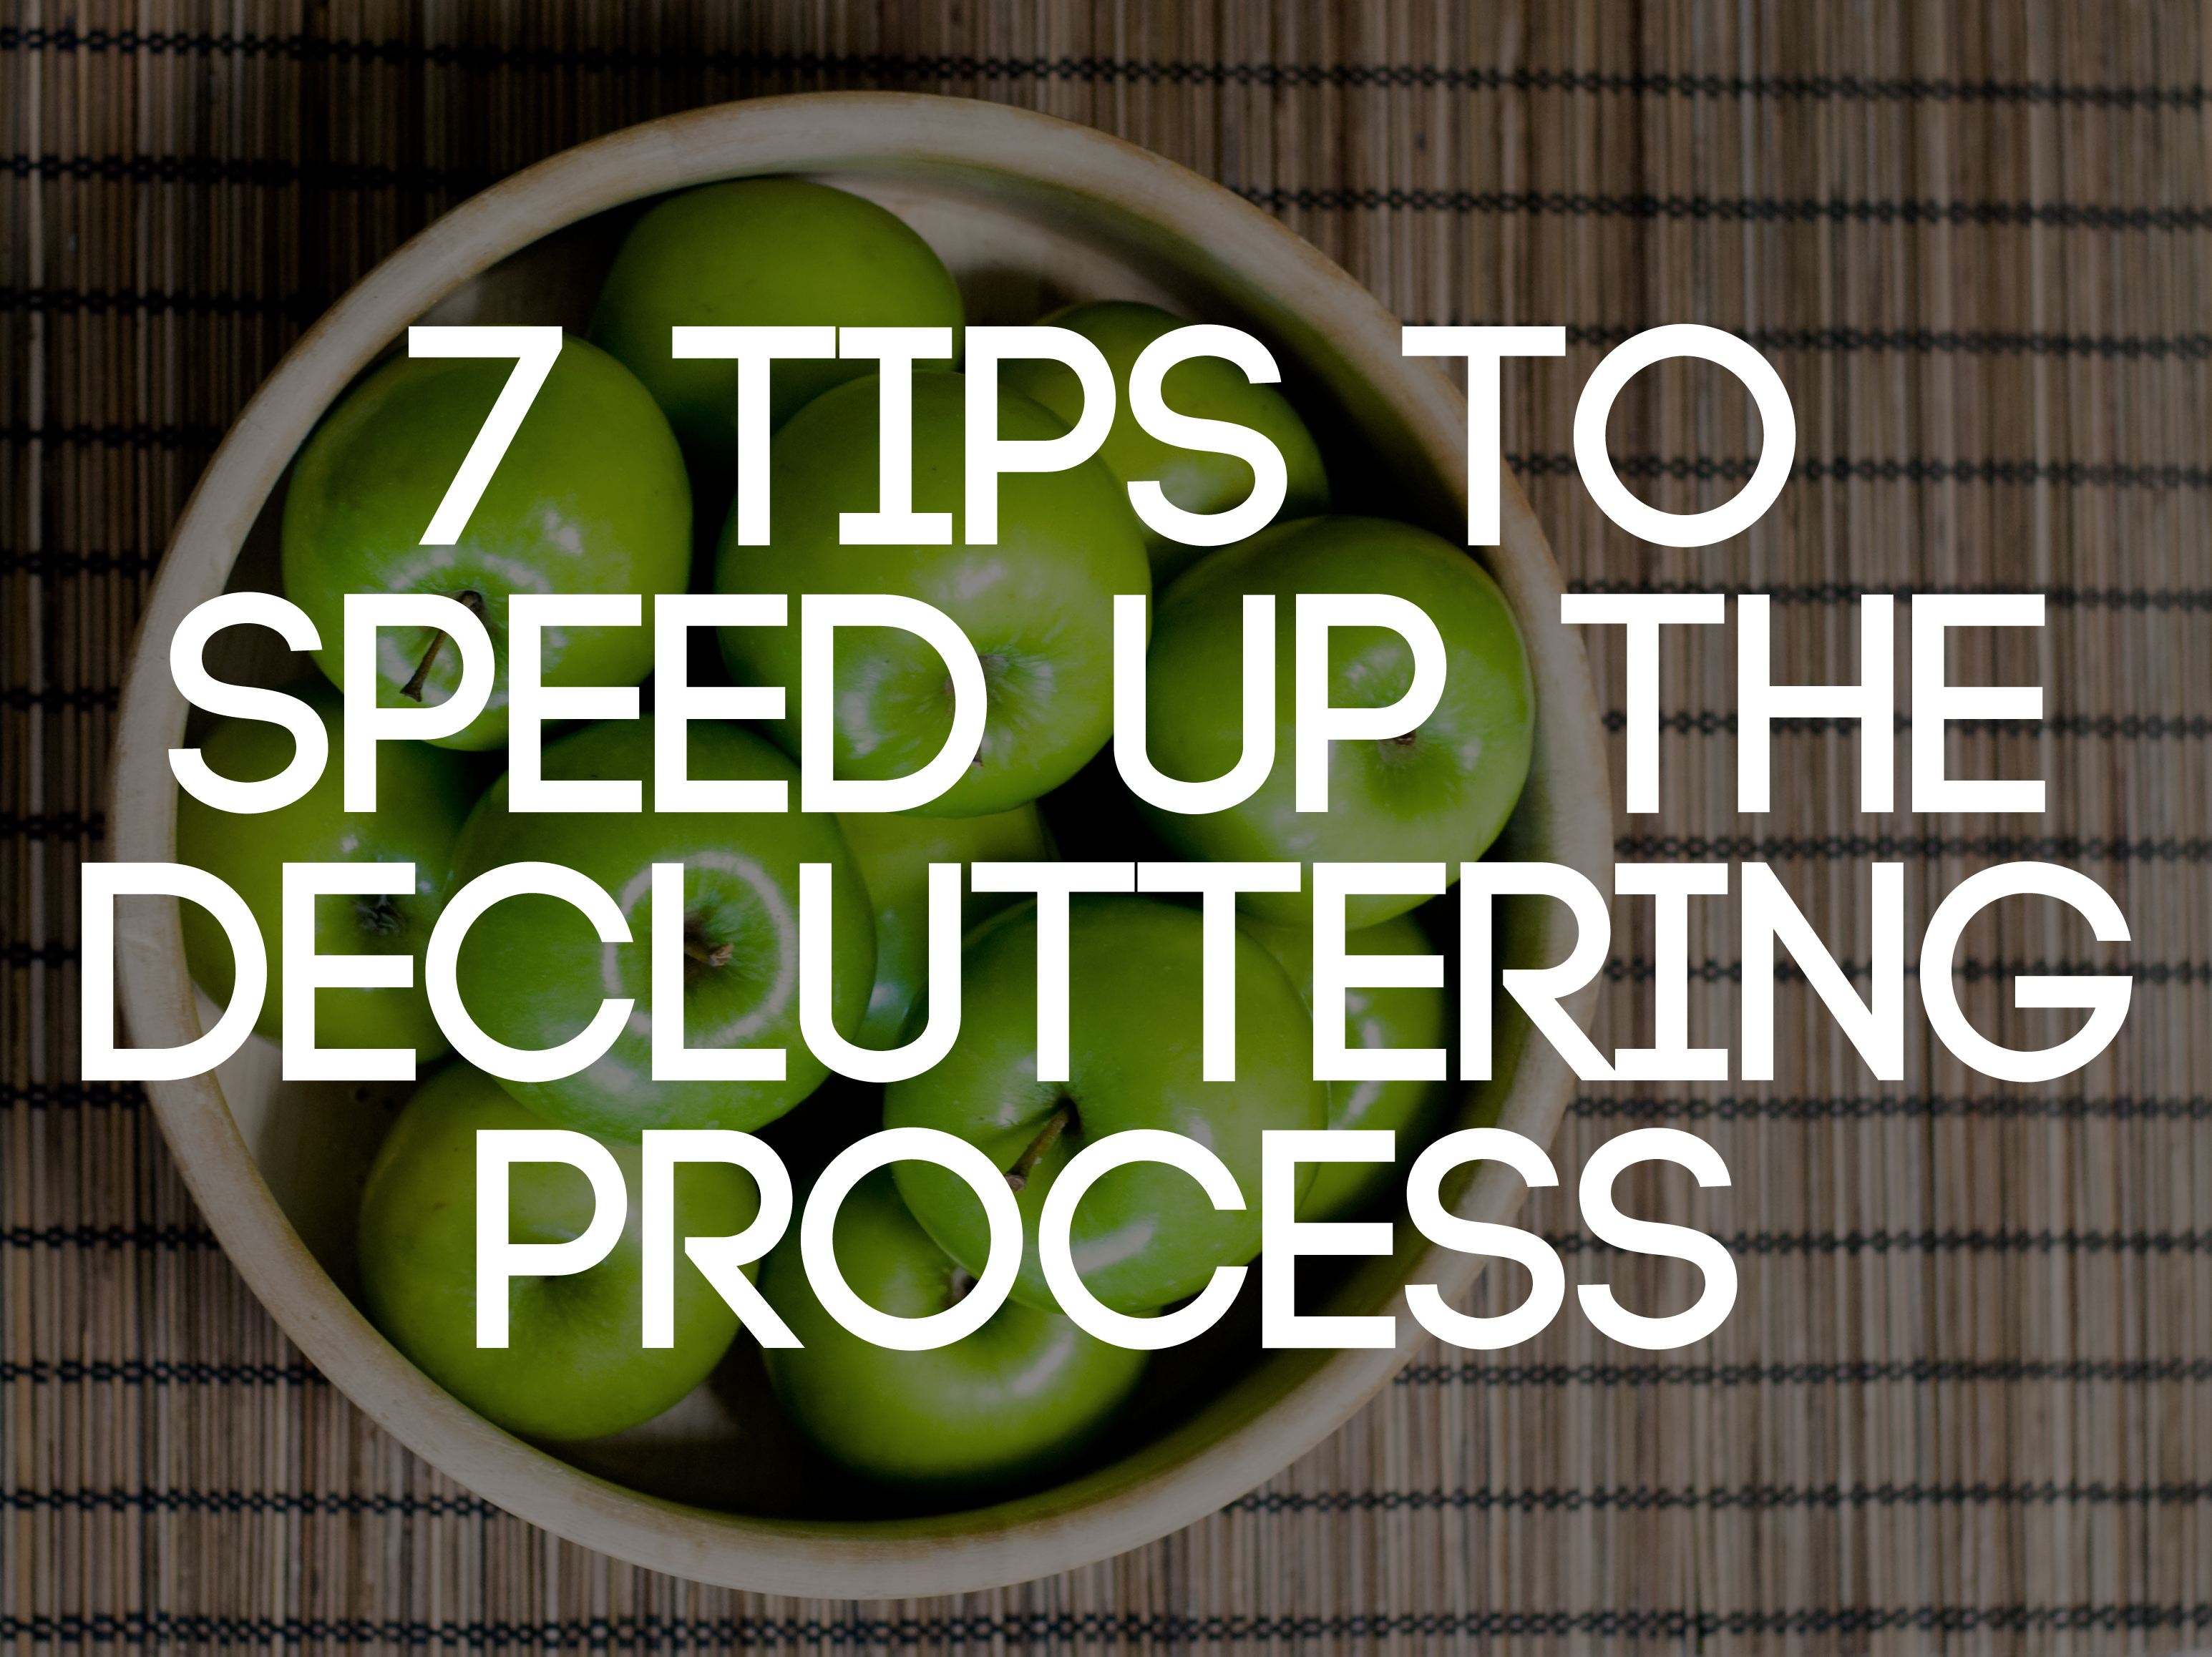 7 tips to speed up the decluttering process - Important thing consider decluttering ...